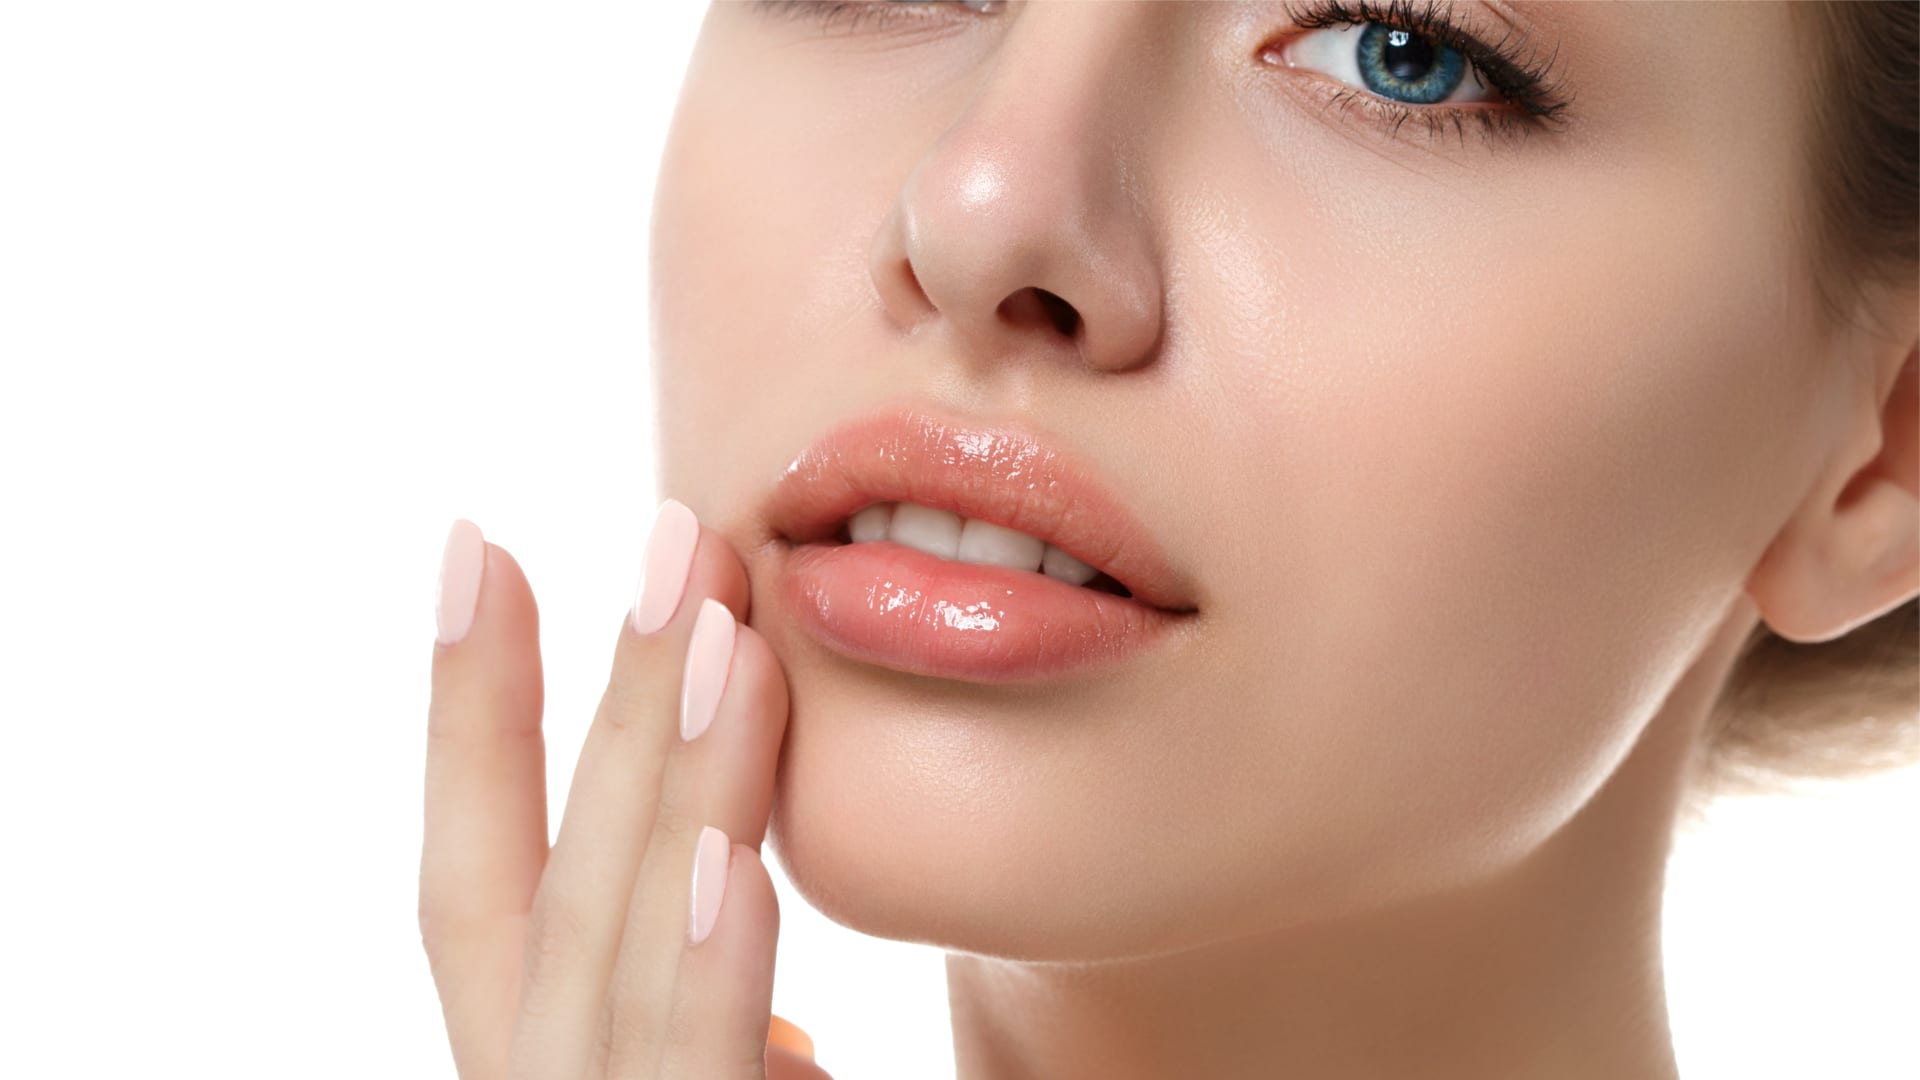 Reshape, plump volumize: what hyaluronic acid can do for lips.